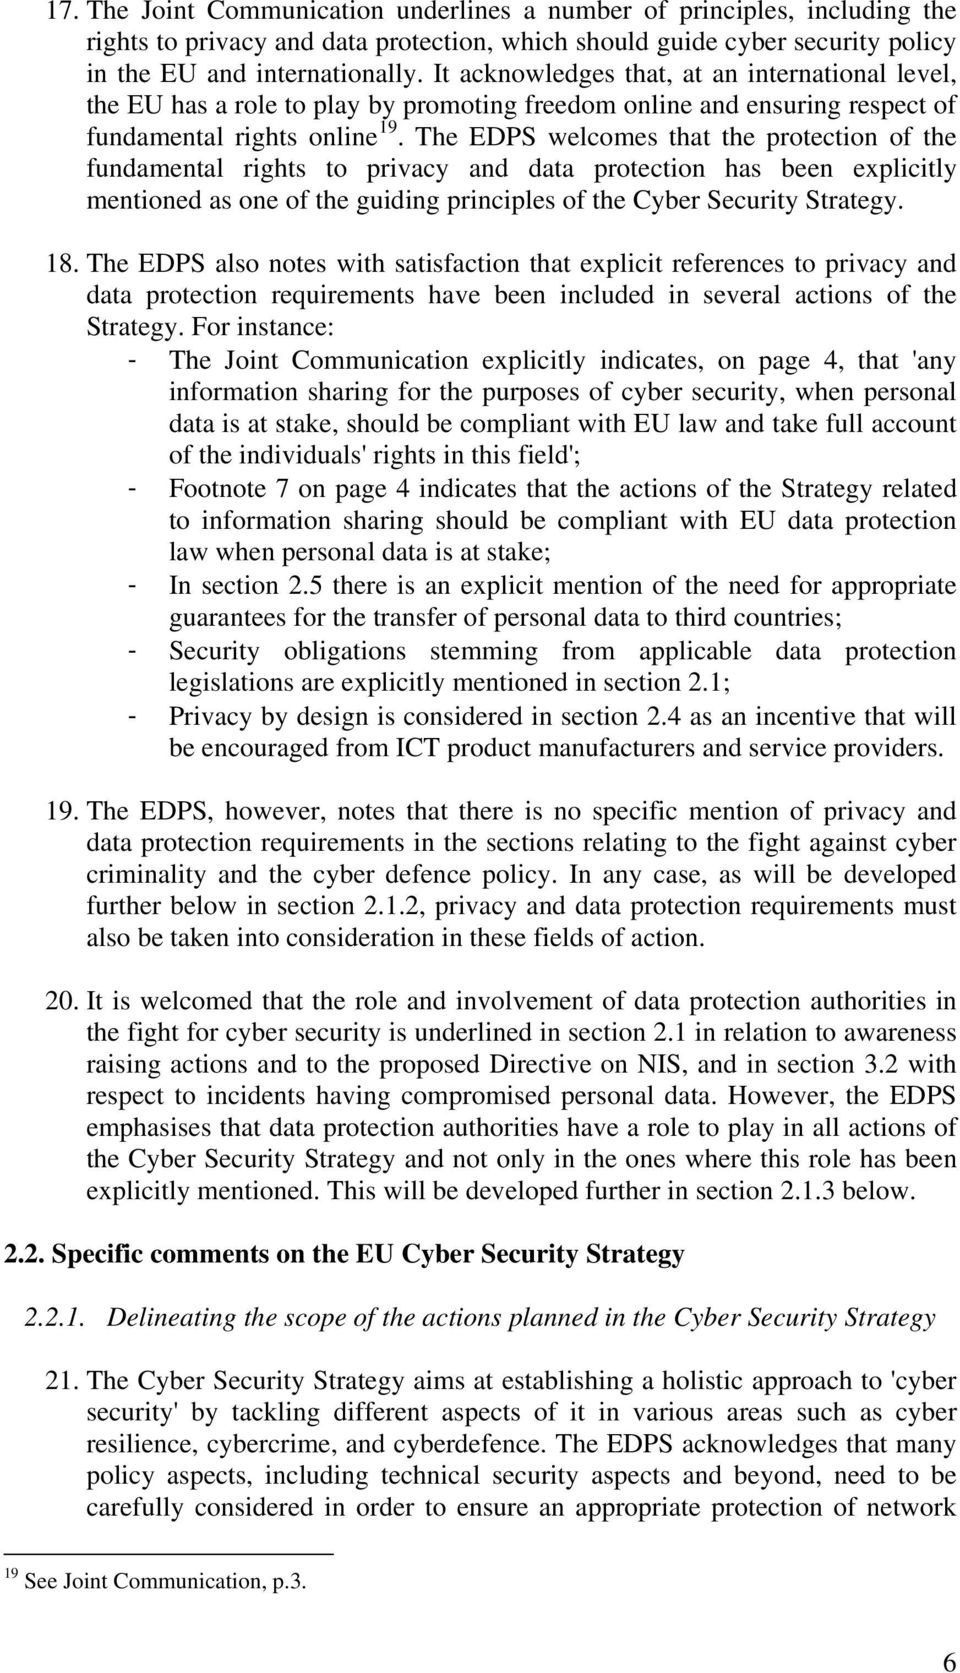 The EDPS welcomes that the protection of the fundamental rights to privacy and data protection has been explicitly mentioned as one of the guiding principles of the Cyber Security Strategy. 18.